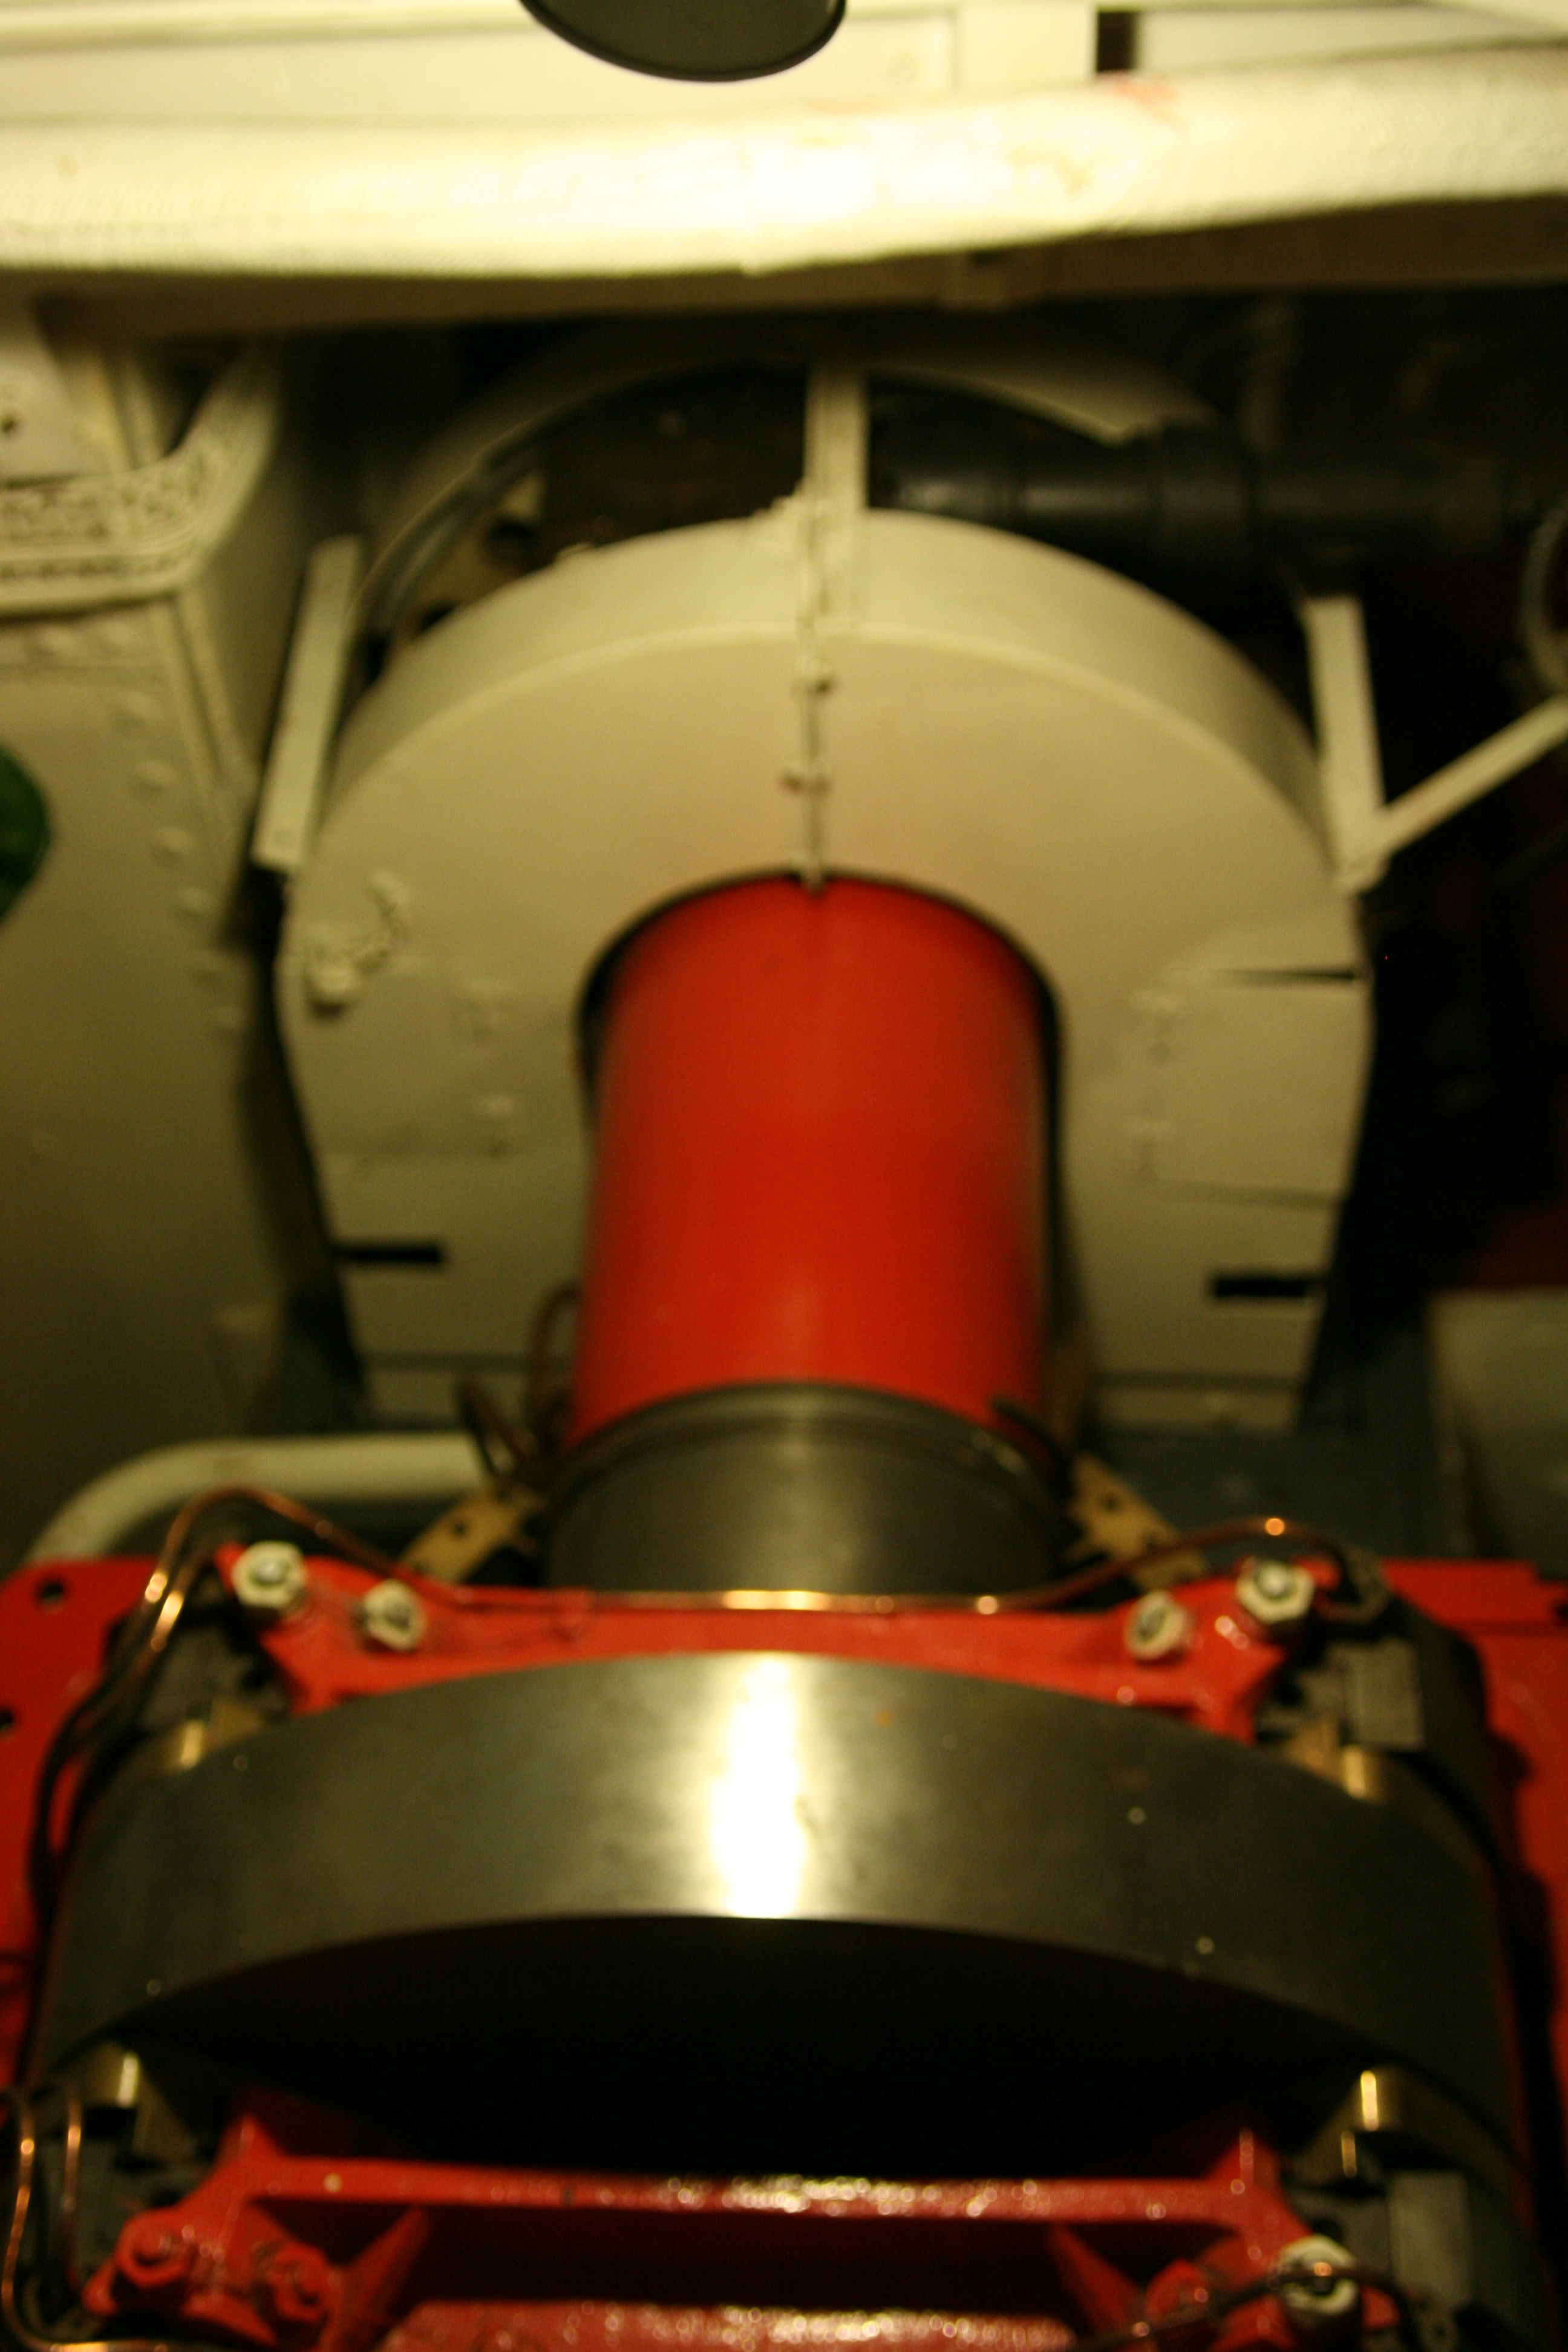 Queen Mary Engine Room: Propeller Shaft And